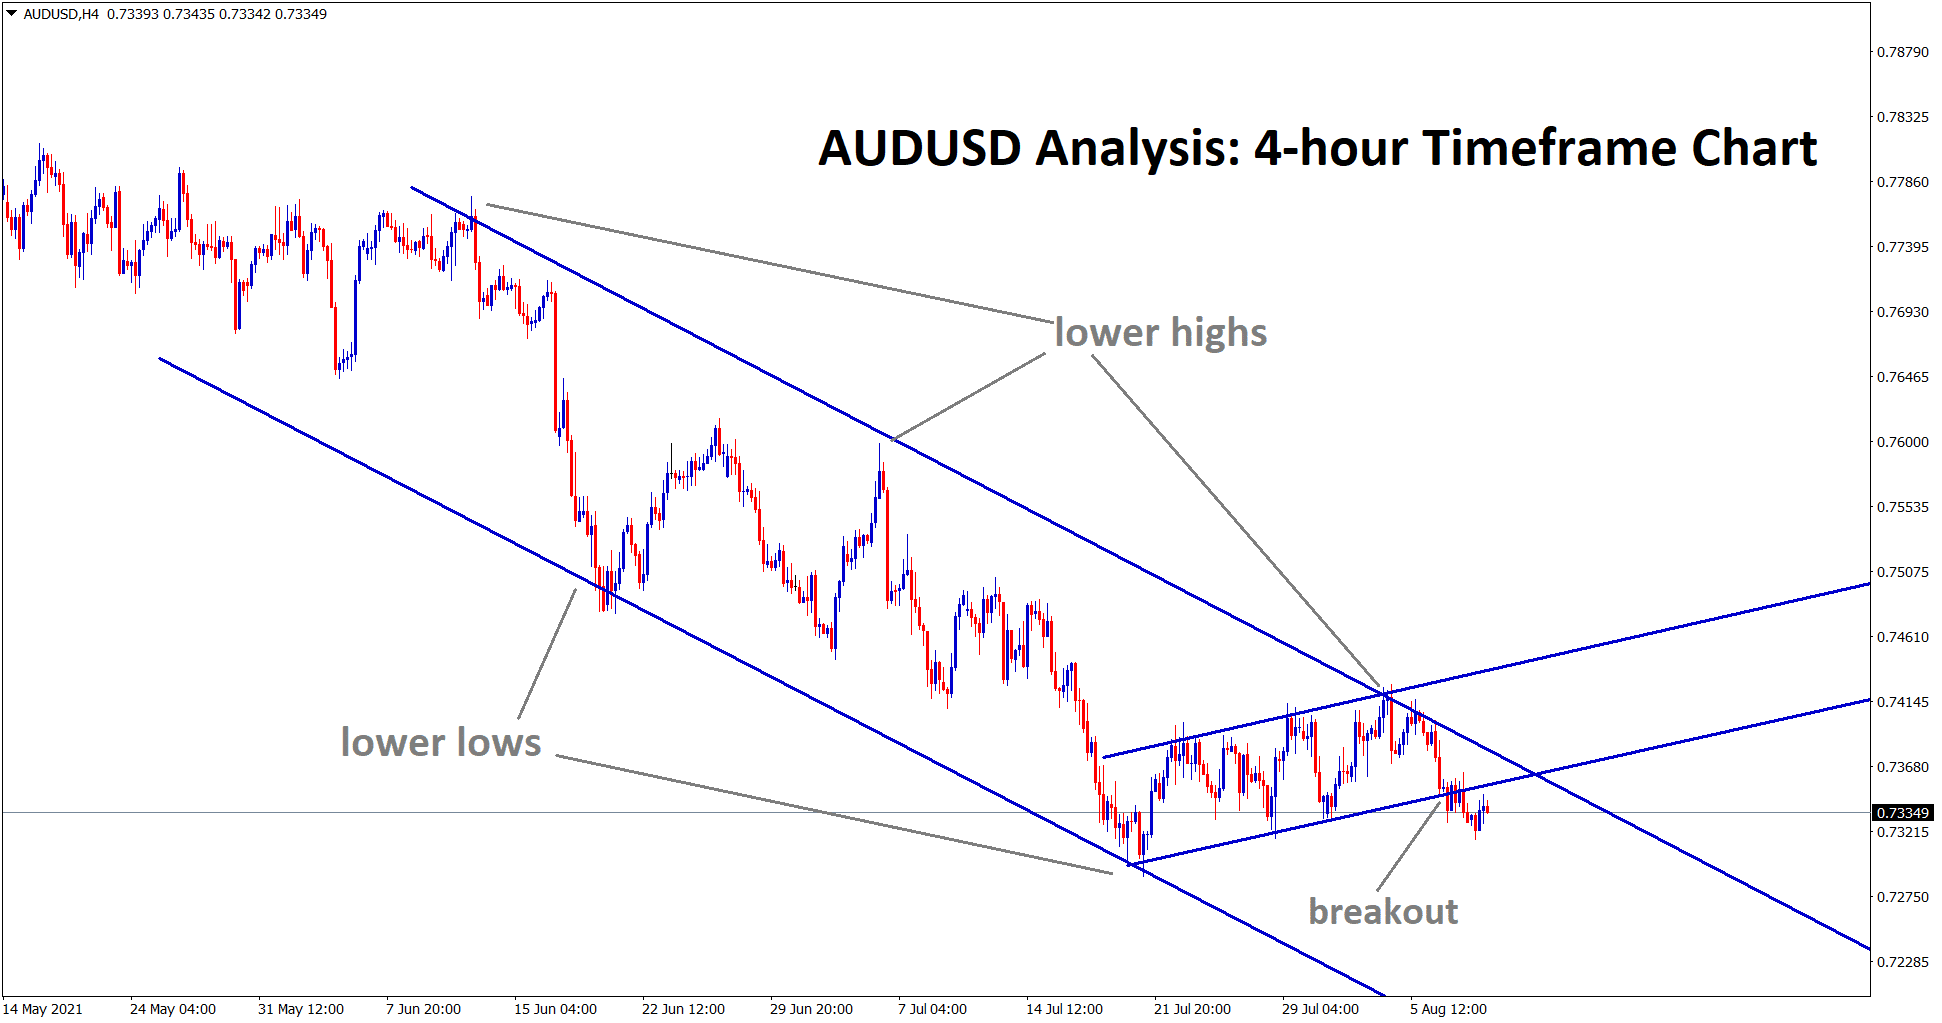 AUDUSD has broken the bottom level of the minor ascending channel